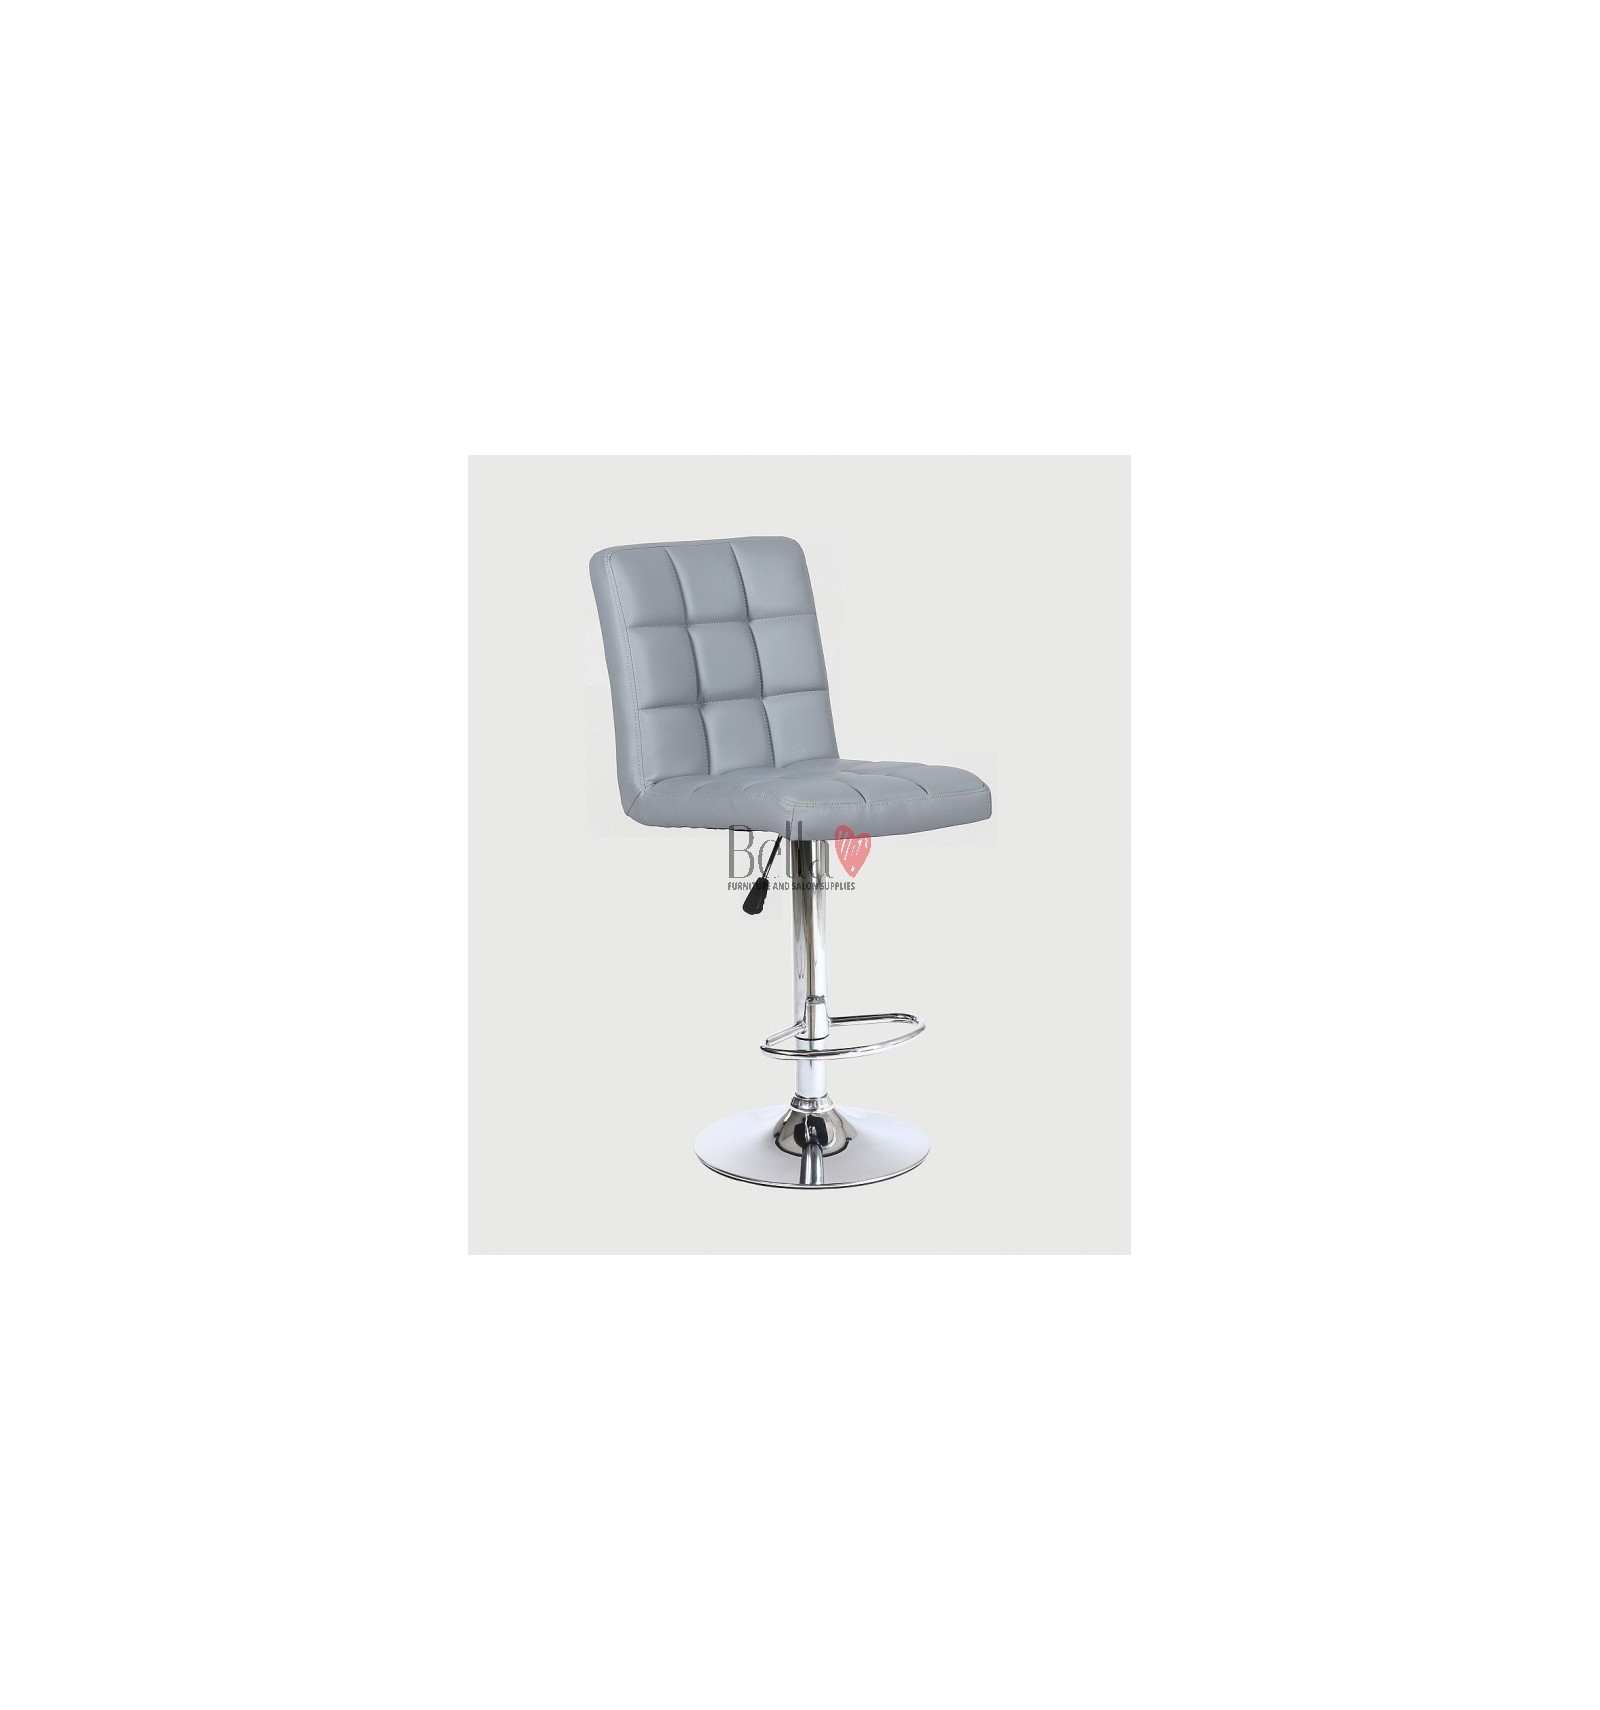 make up chair dove hunting chairs grey stylish makeup for salon and beauty in ireland classic high salons bfhc1015